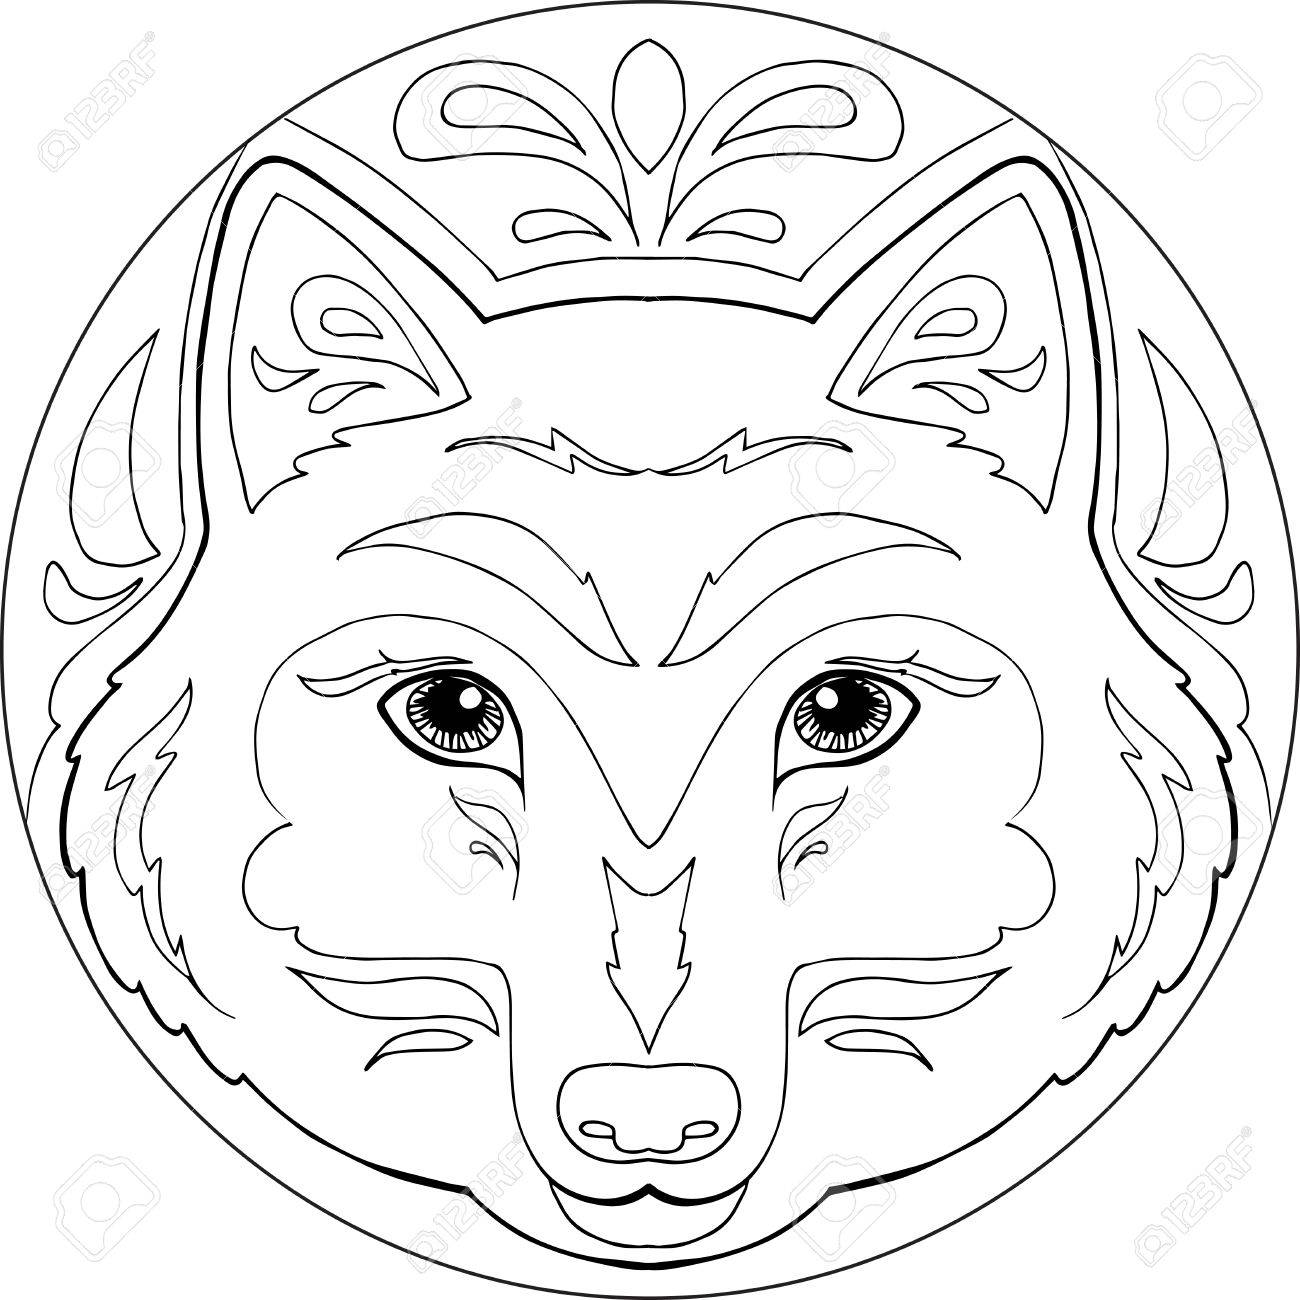 Decorative Coloring Mandalas With Wolf Head Royalty Free Cliparts